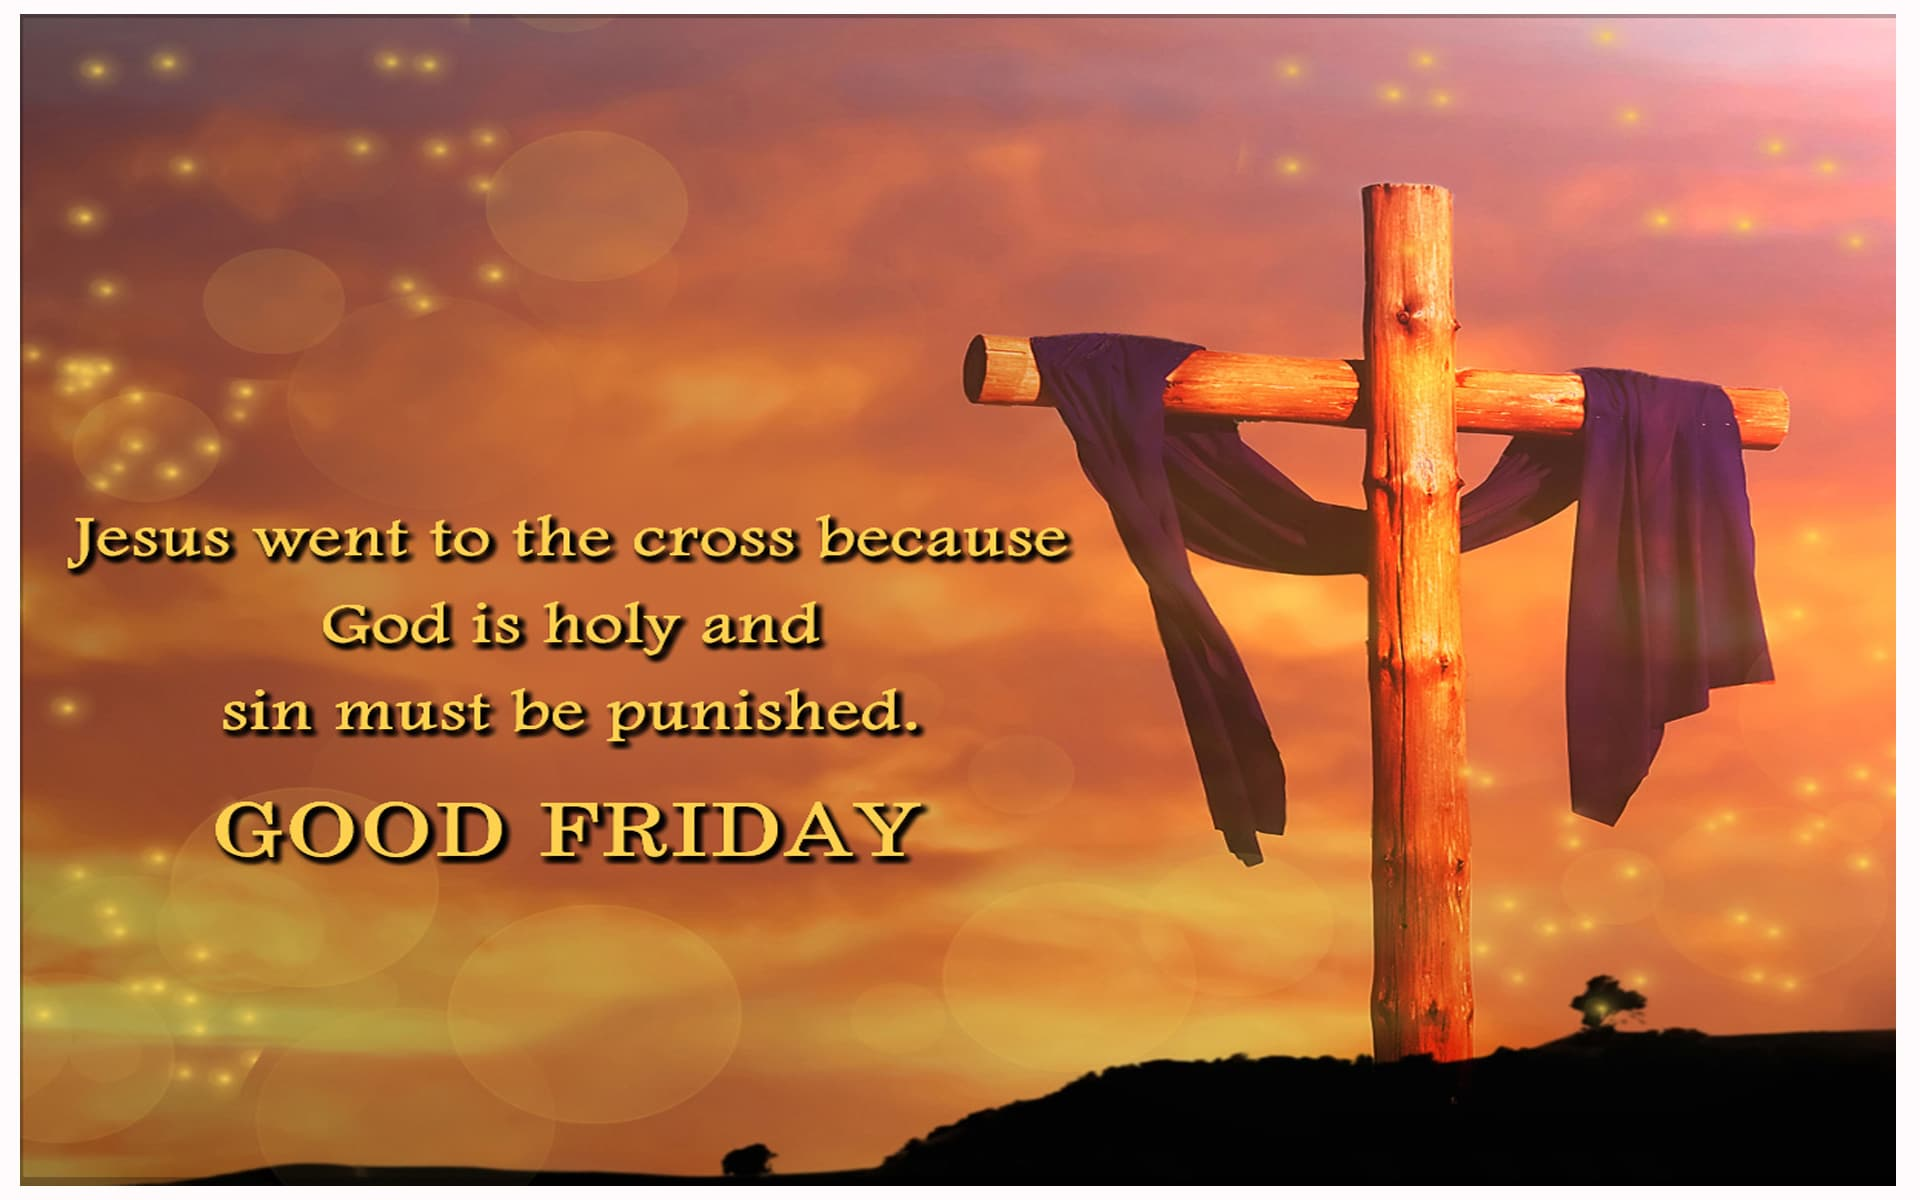 Good Friday 2017 SMS